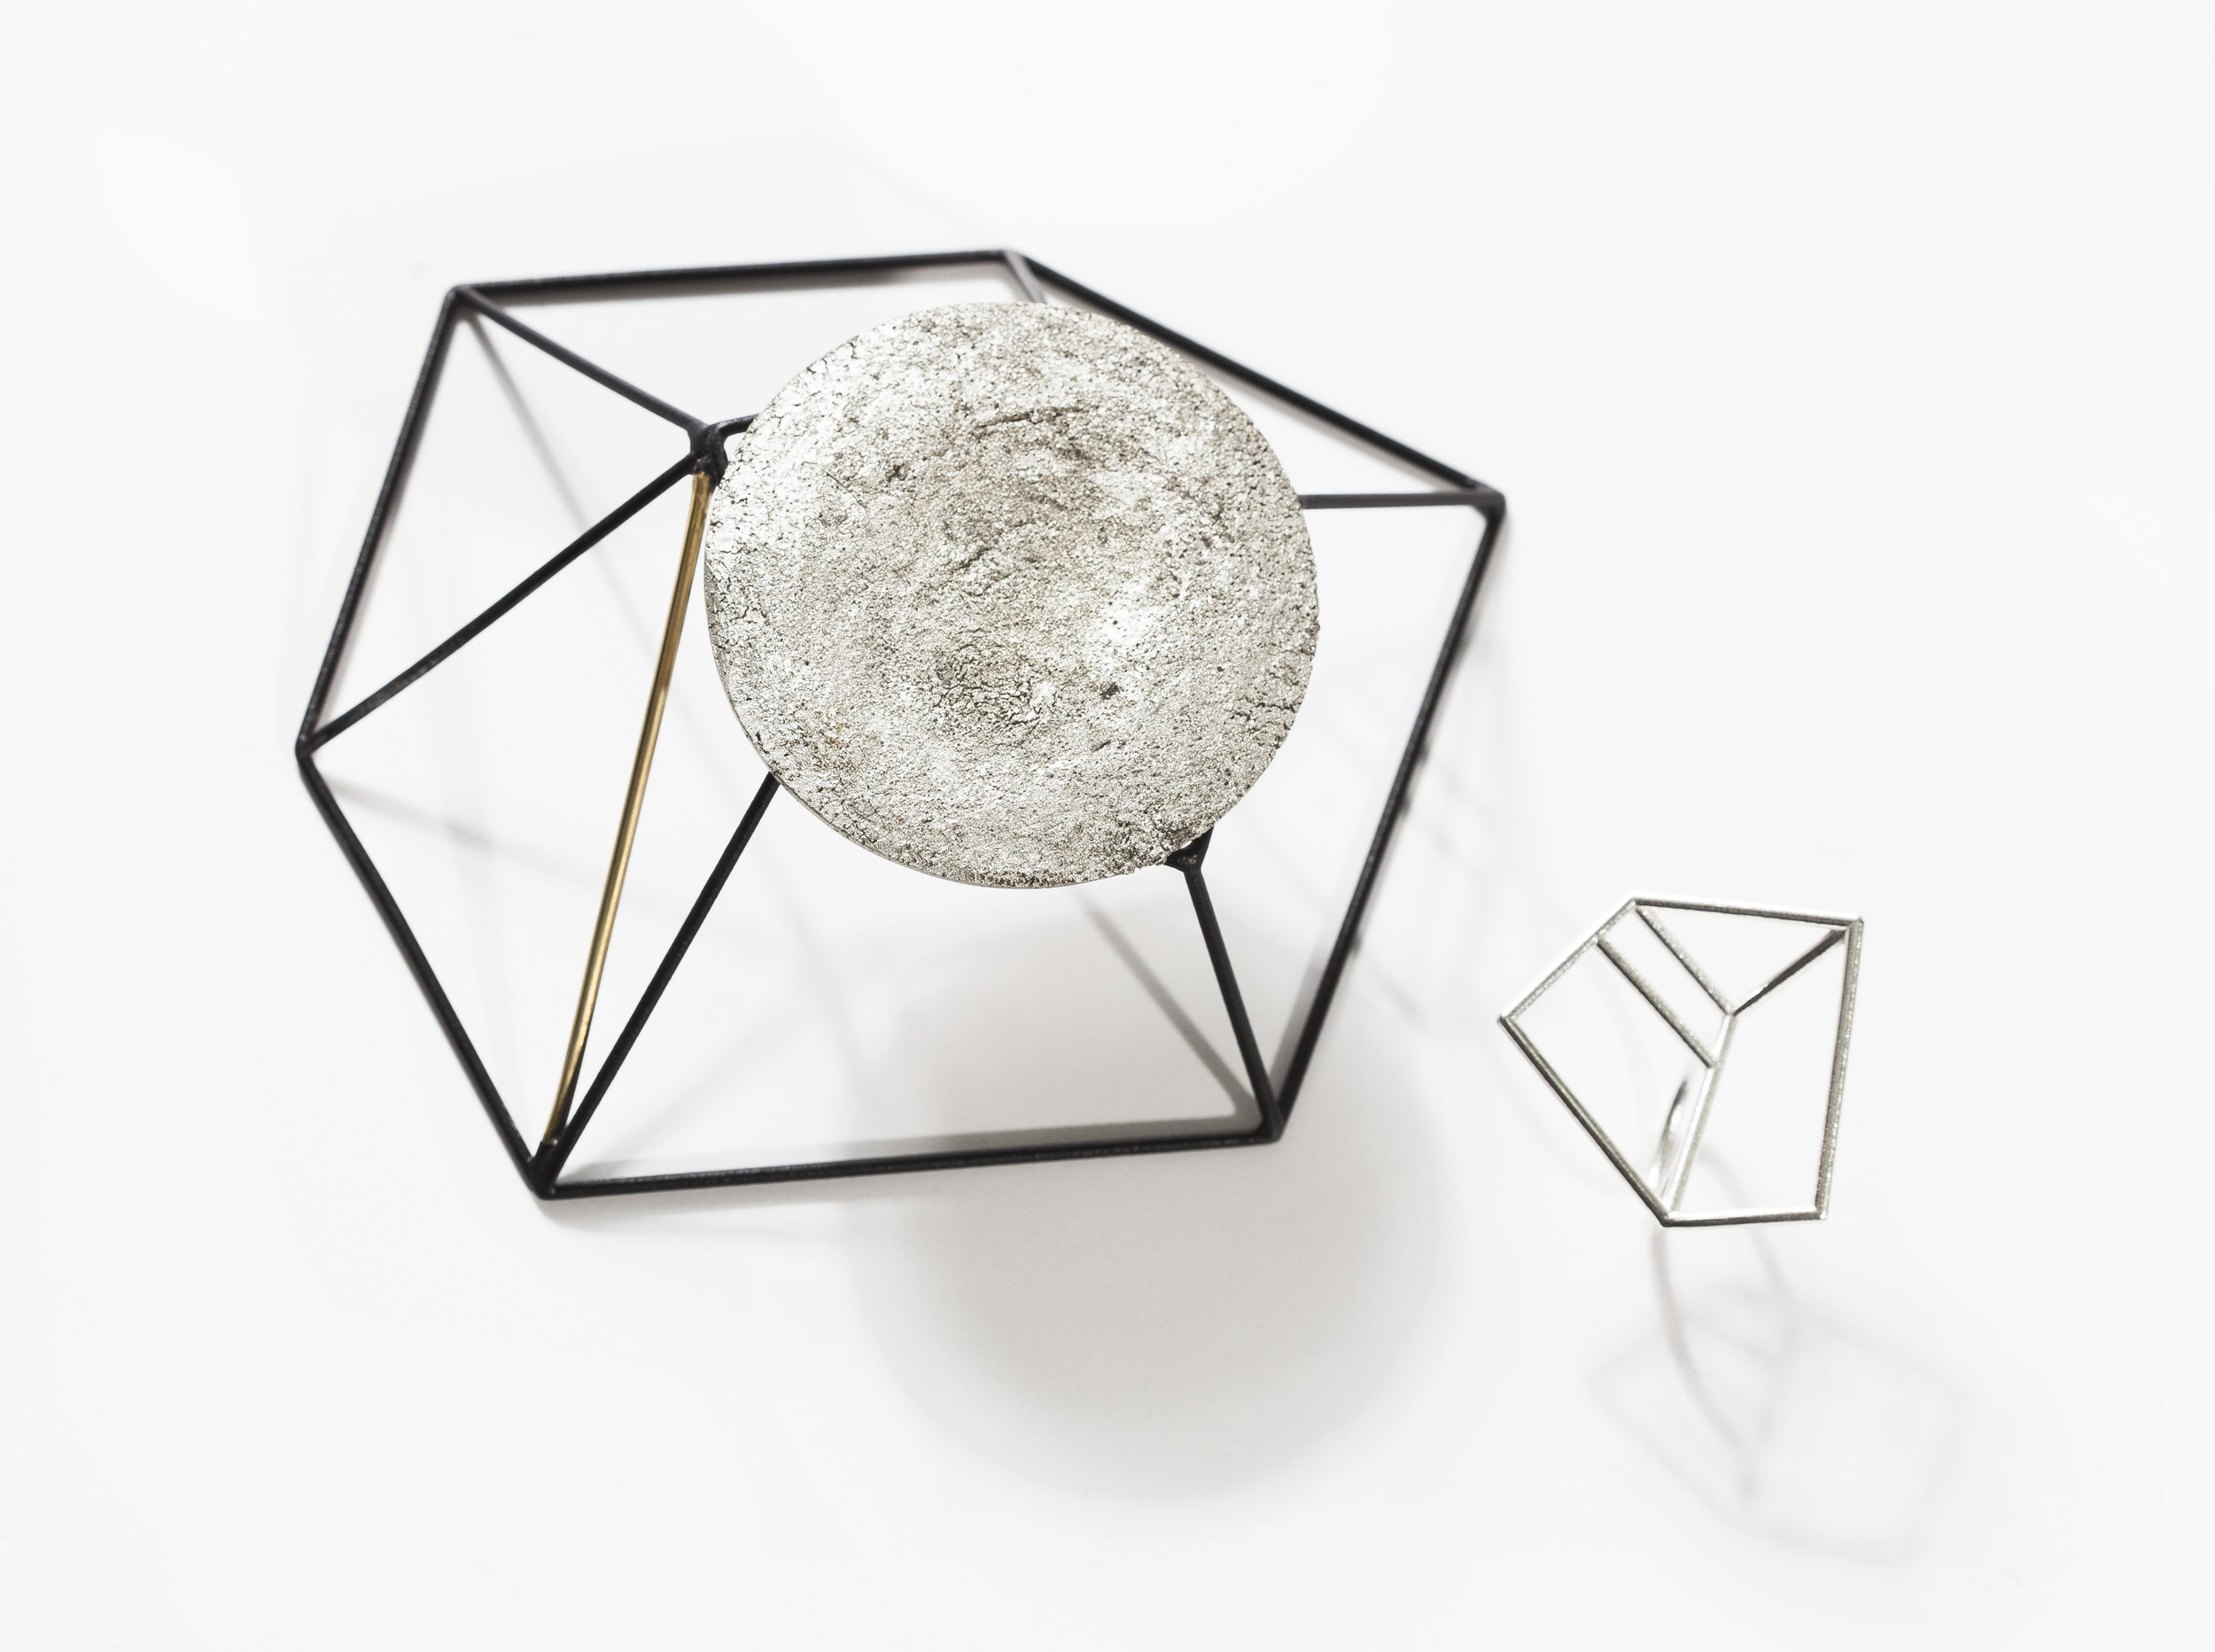 Emma-Field-Geometric-Sculpture-Ring-Above-View.jpg